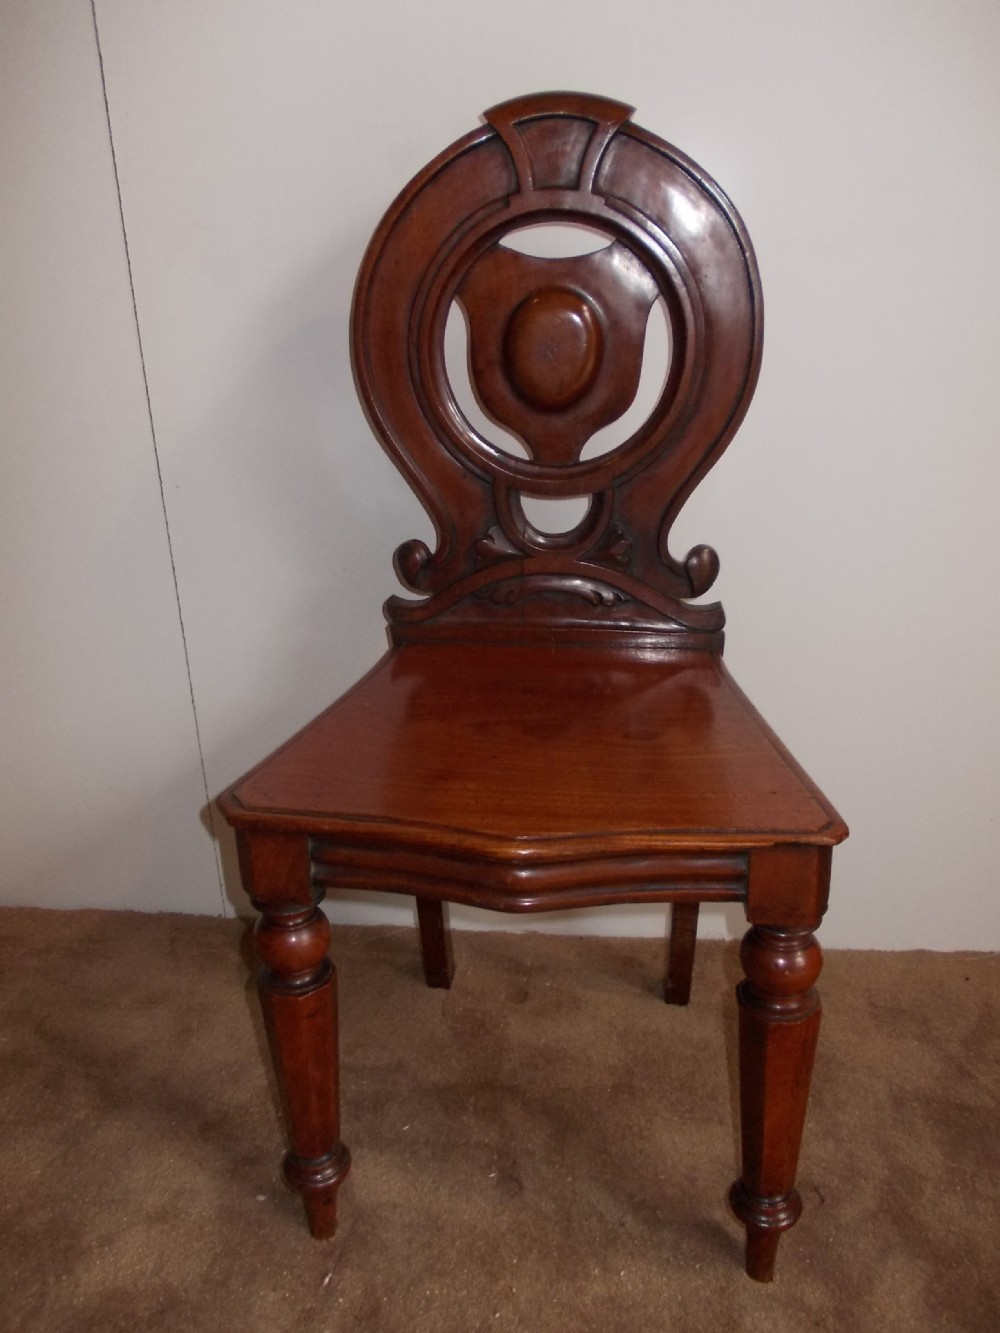 early victorian mahogany hall chair - Early Victorian Mahogany Hall Chair 308209 Sellingantiques.co.uk